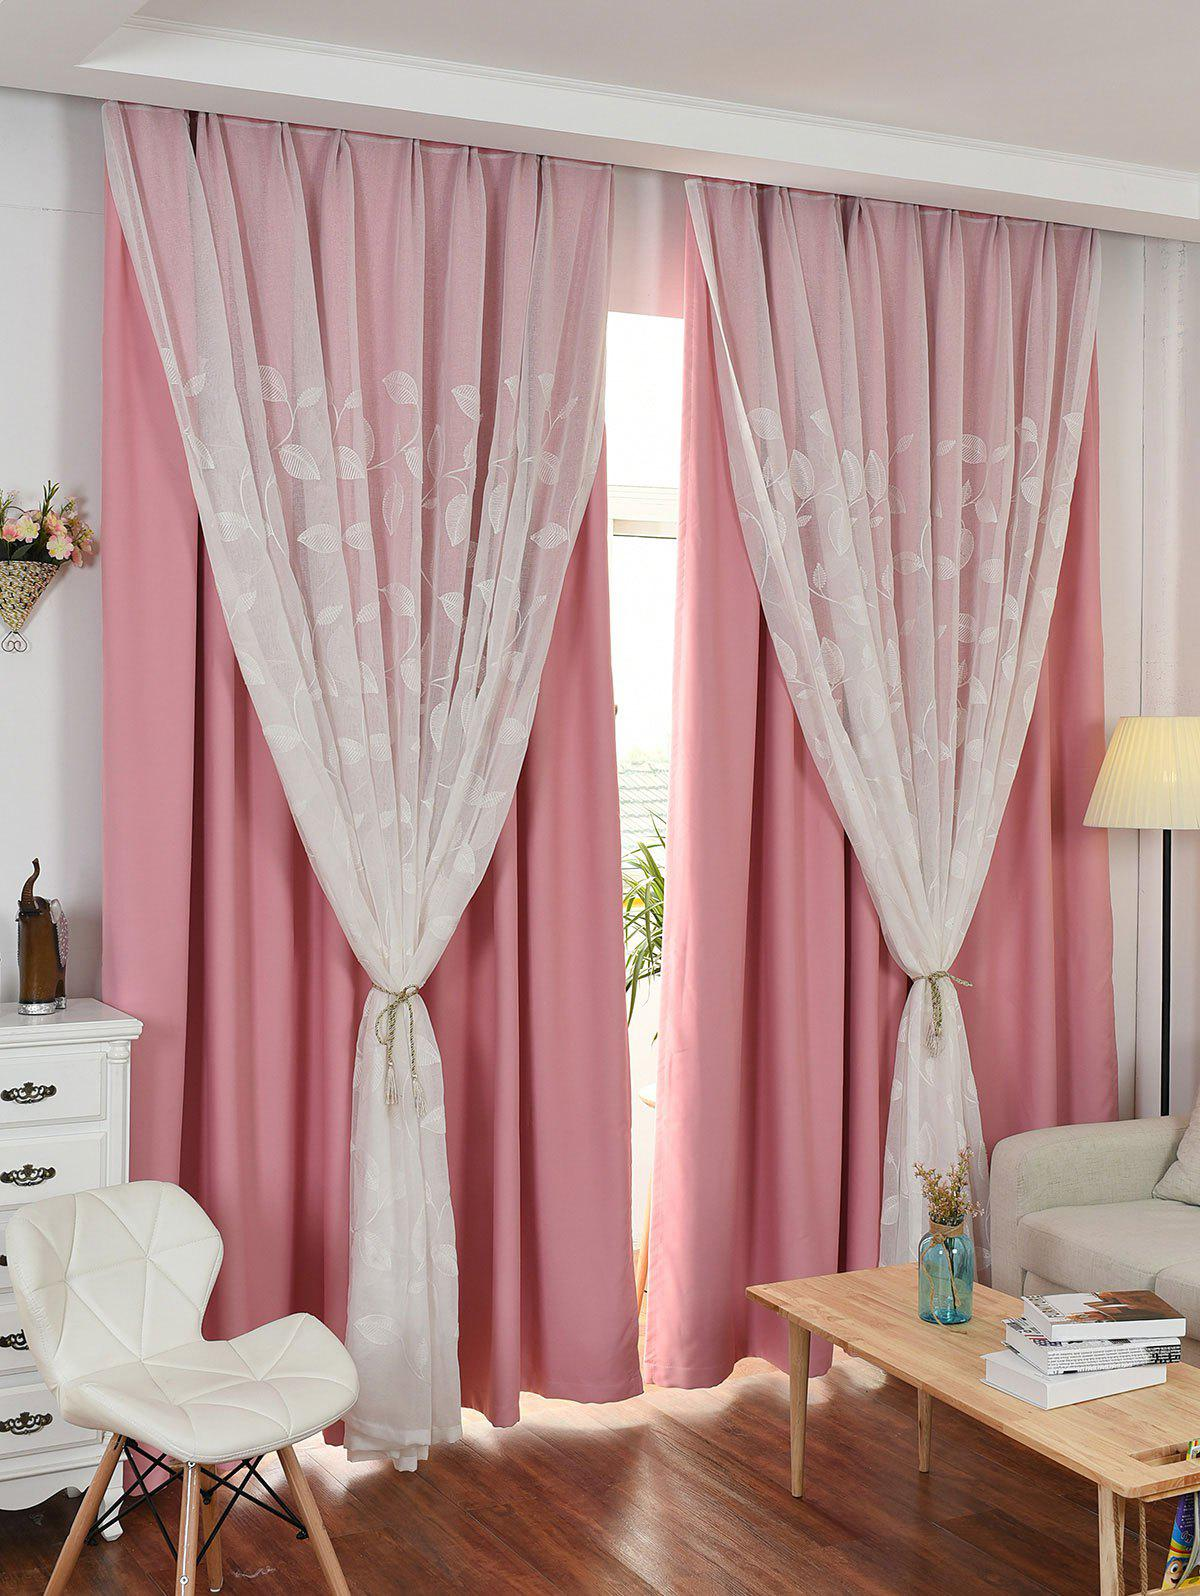 Online Princess Style Double Layers Curtains For Bedroom